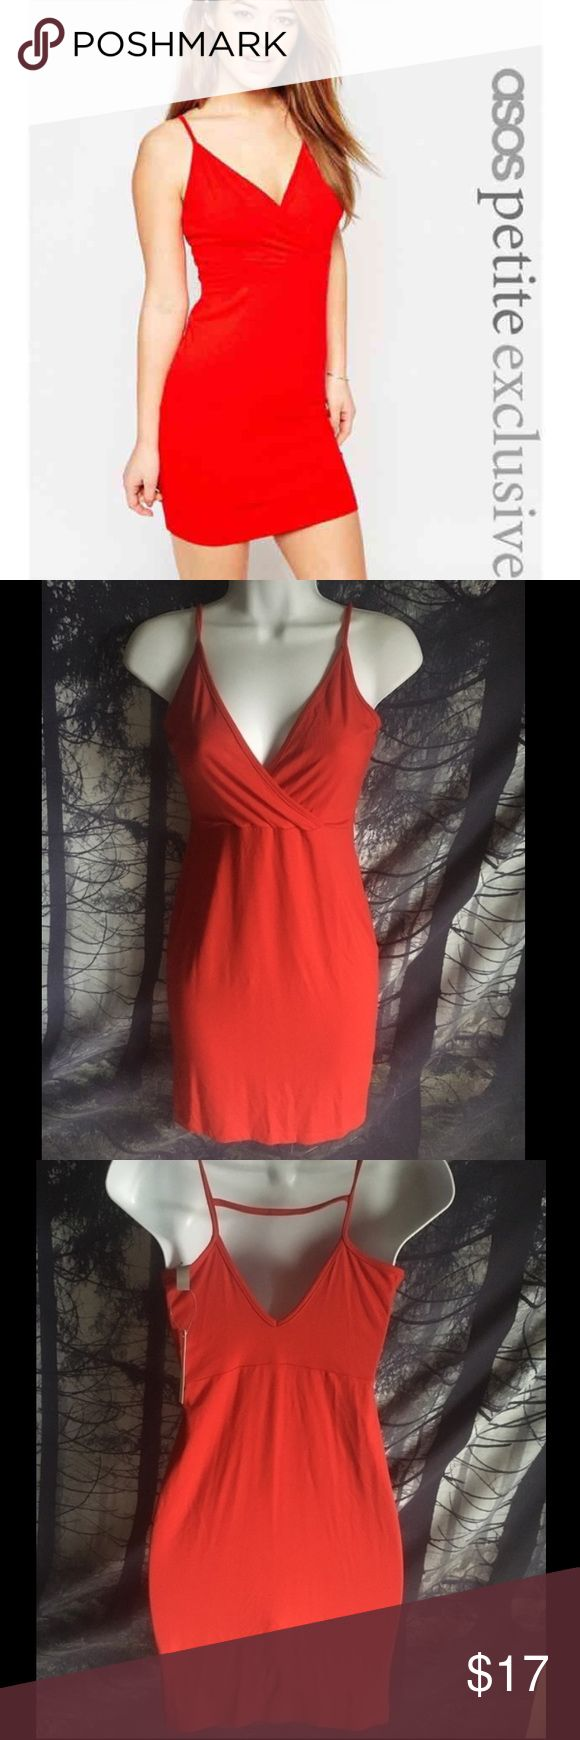 Asos red dress NWT US 4 (petite) New with tags #red #reddress #asos #asospetite #petite #asosdress #us4 #small #smalldress #newdress #newwithtags #nwtdress #nwt ASOS Petite Dresses Mini